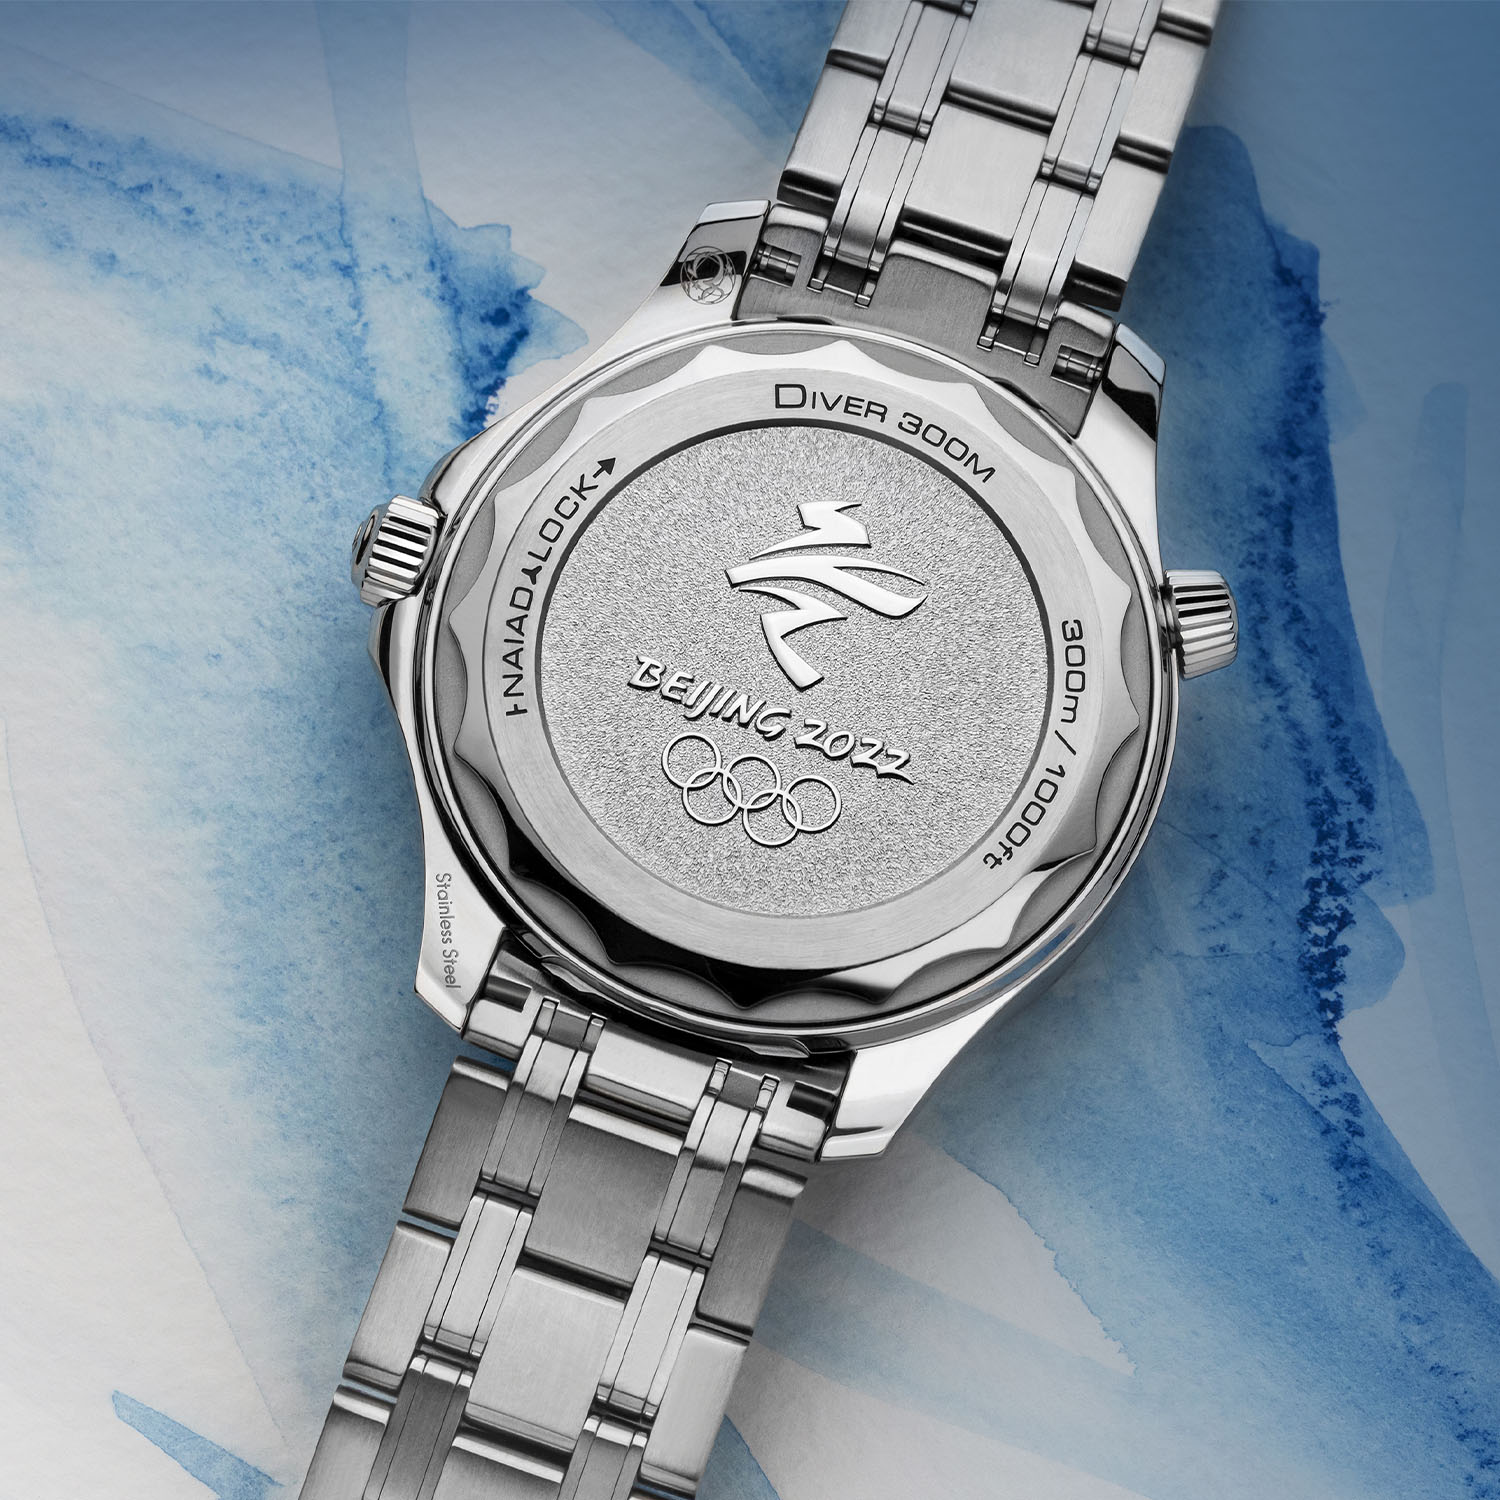 Omega Seamaster Diver 300M Beijing 2022 Special Edition 522-30-42-20-03-001 - 3